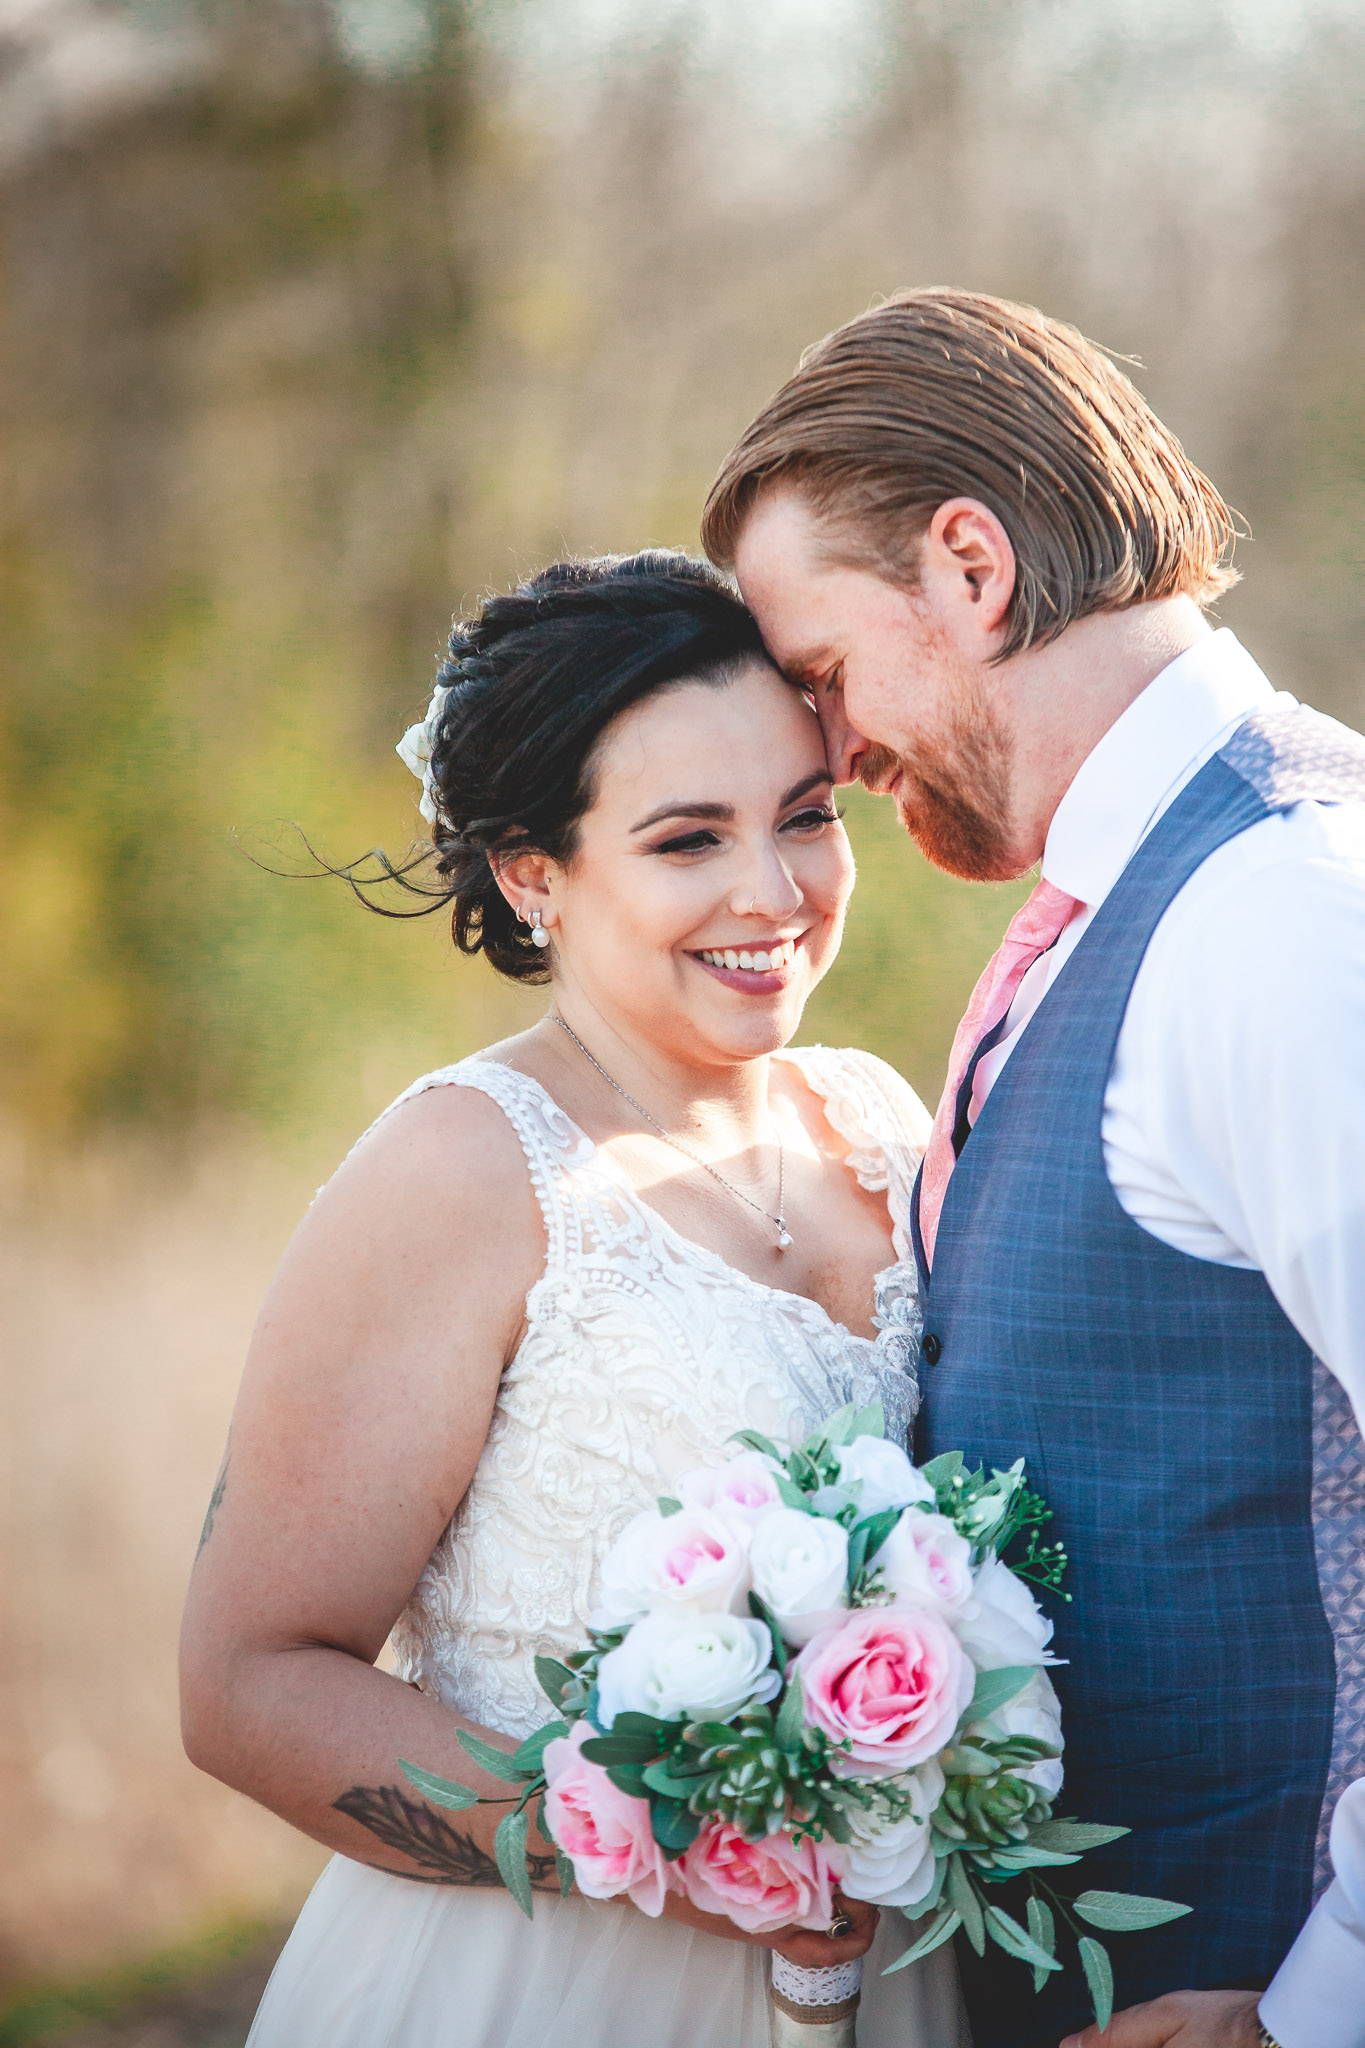 Amy D Photography- Bride and Groom-Barrie Wedding Photography Muskoka Wedding Photography Bride and Groom Poses Bride and Groom Train Tracks Snow Valley Wedding-33.jpg